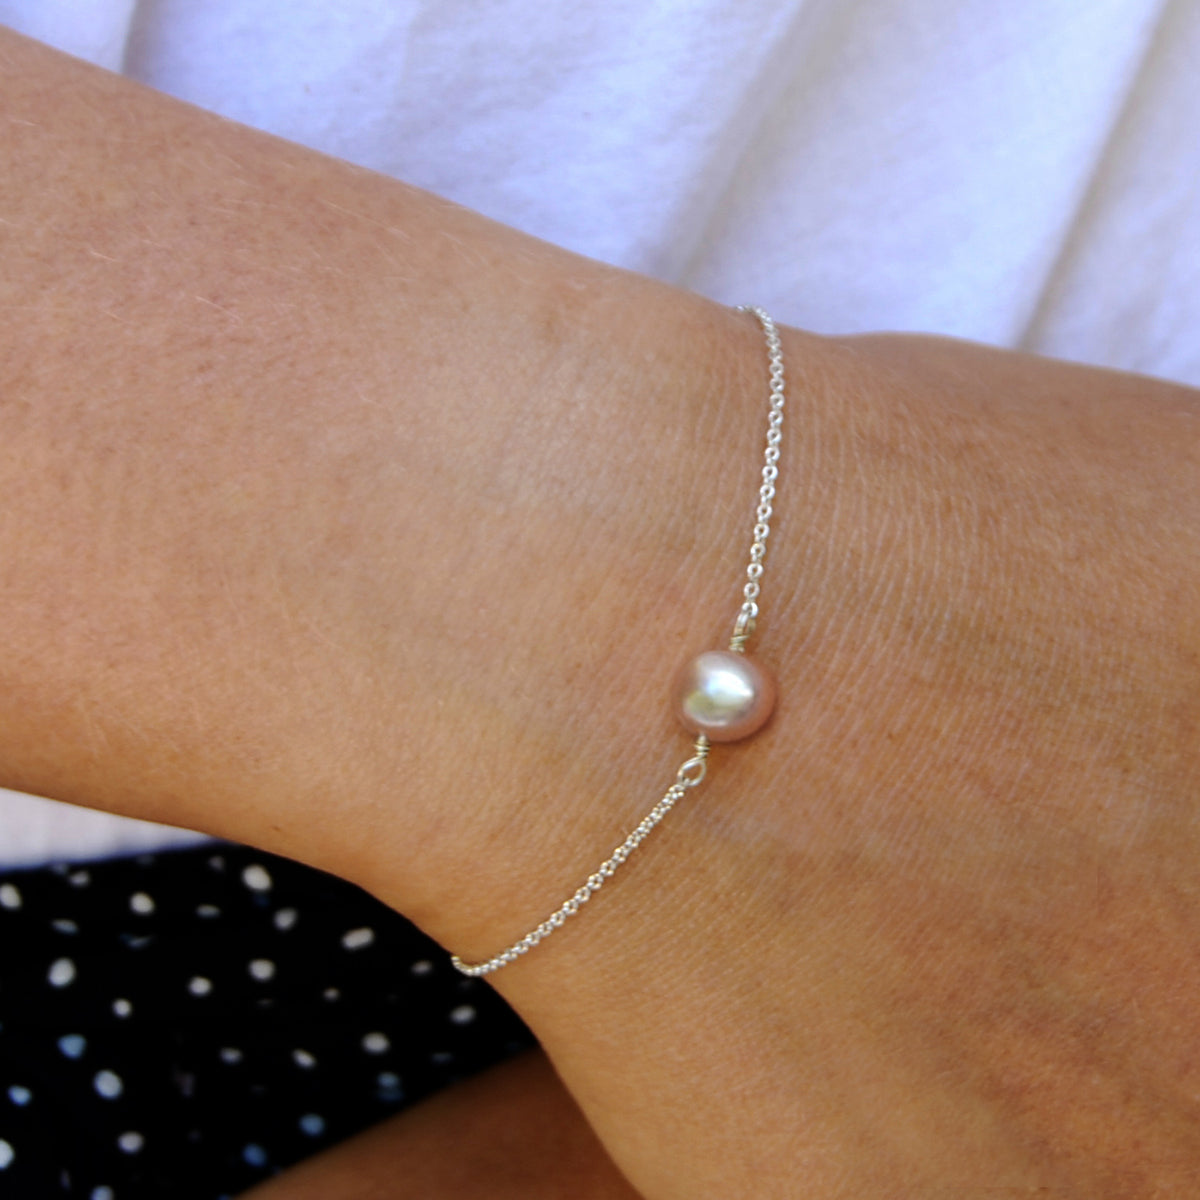 Pink Freshwater Pearl 'Simple' Chain Bracelet